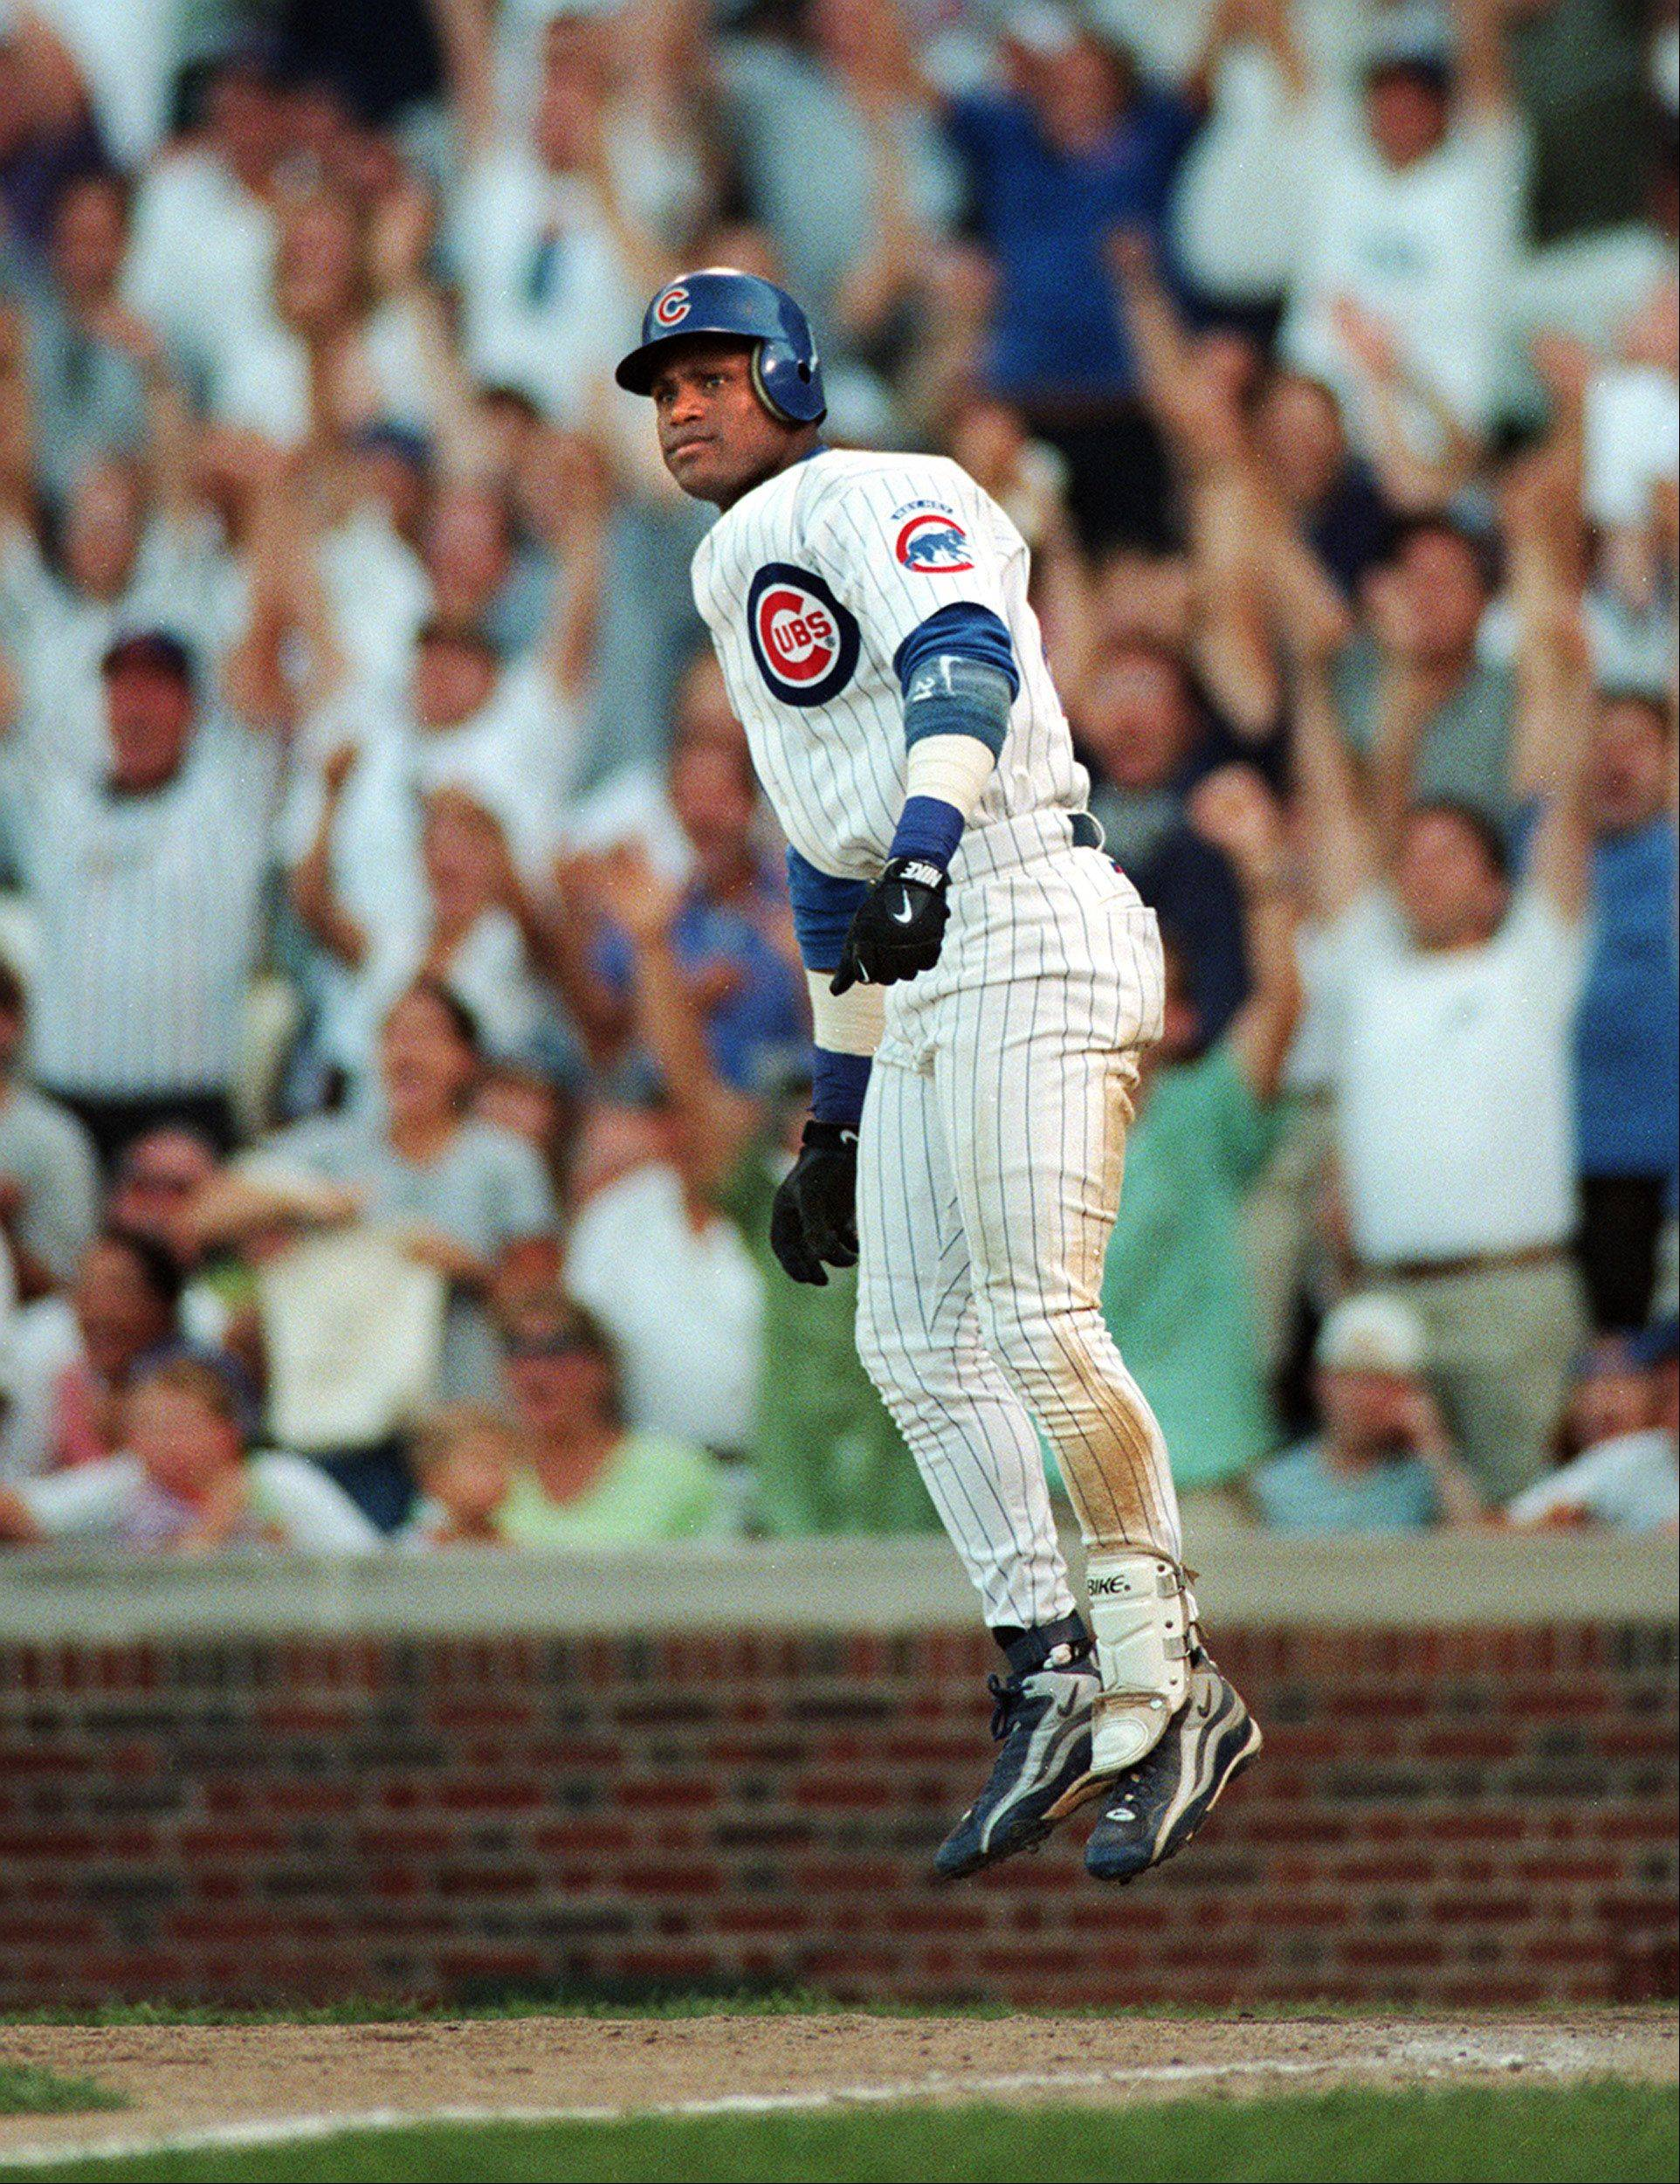 Sammy Sosa does his hop after hitting his 60th home run on Sept. 12, 1998, tying Babe Ruth's record at the time for home runs in a season. The next day Sosa hit 2 more at Wrigley Field.